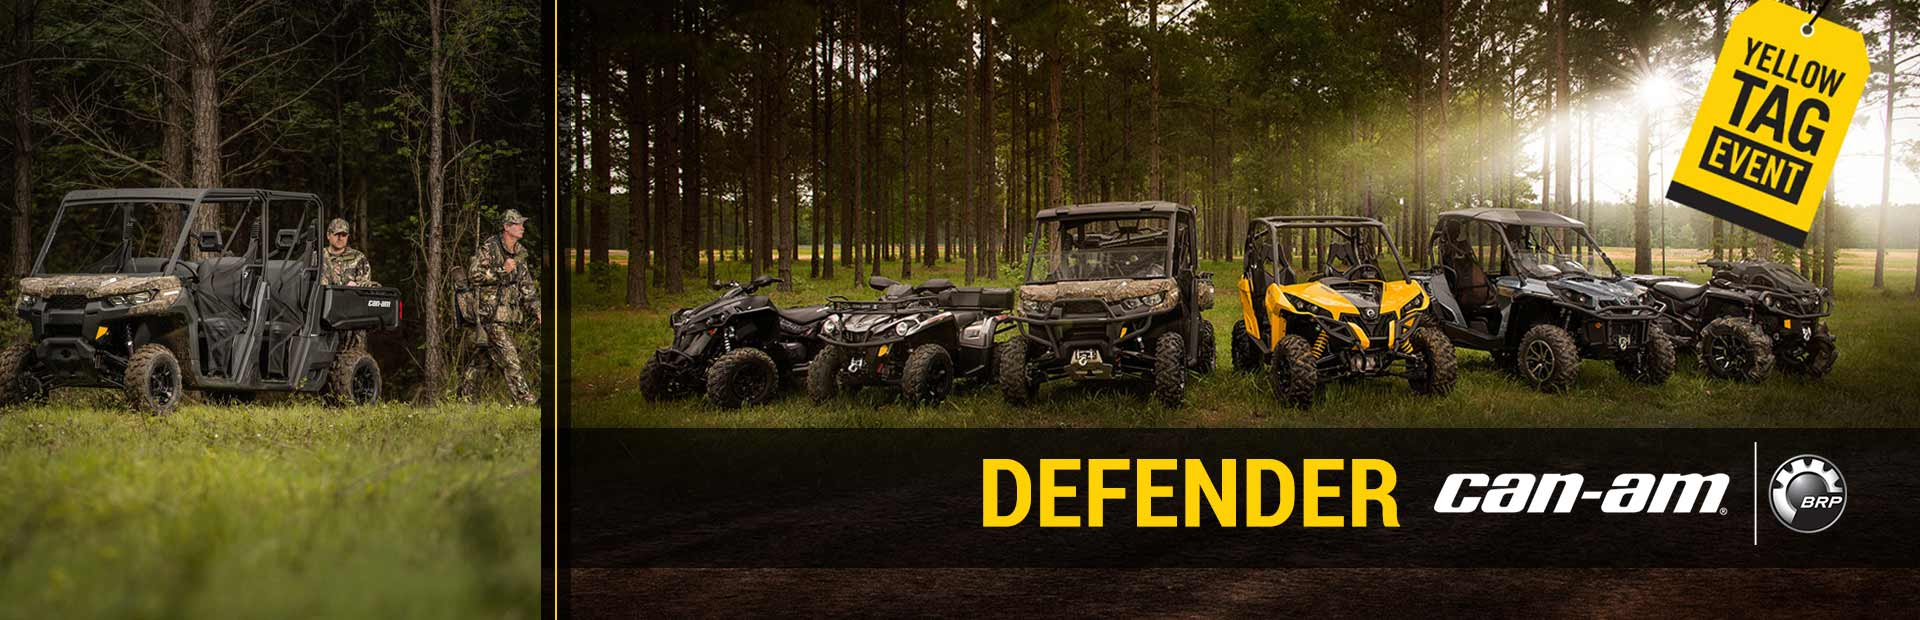 Can-Am: Yellow Tag Event (Defender)